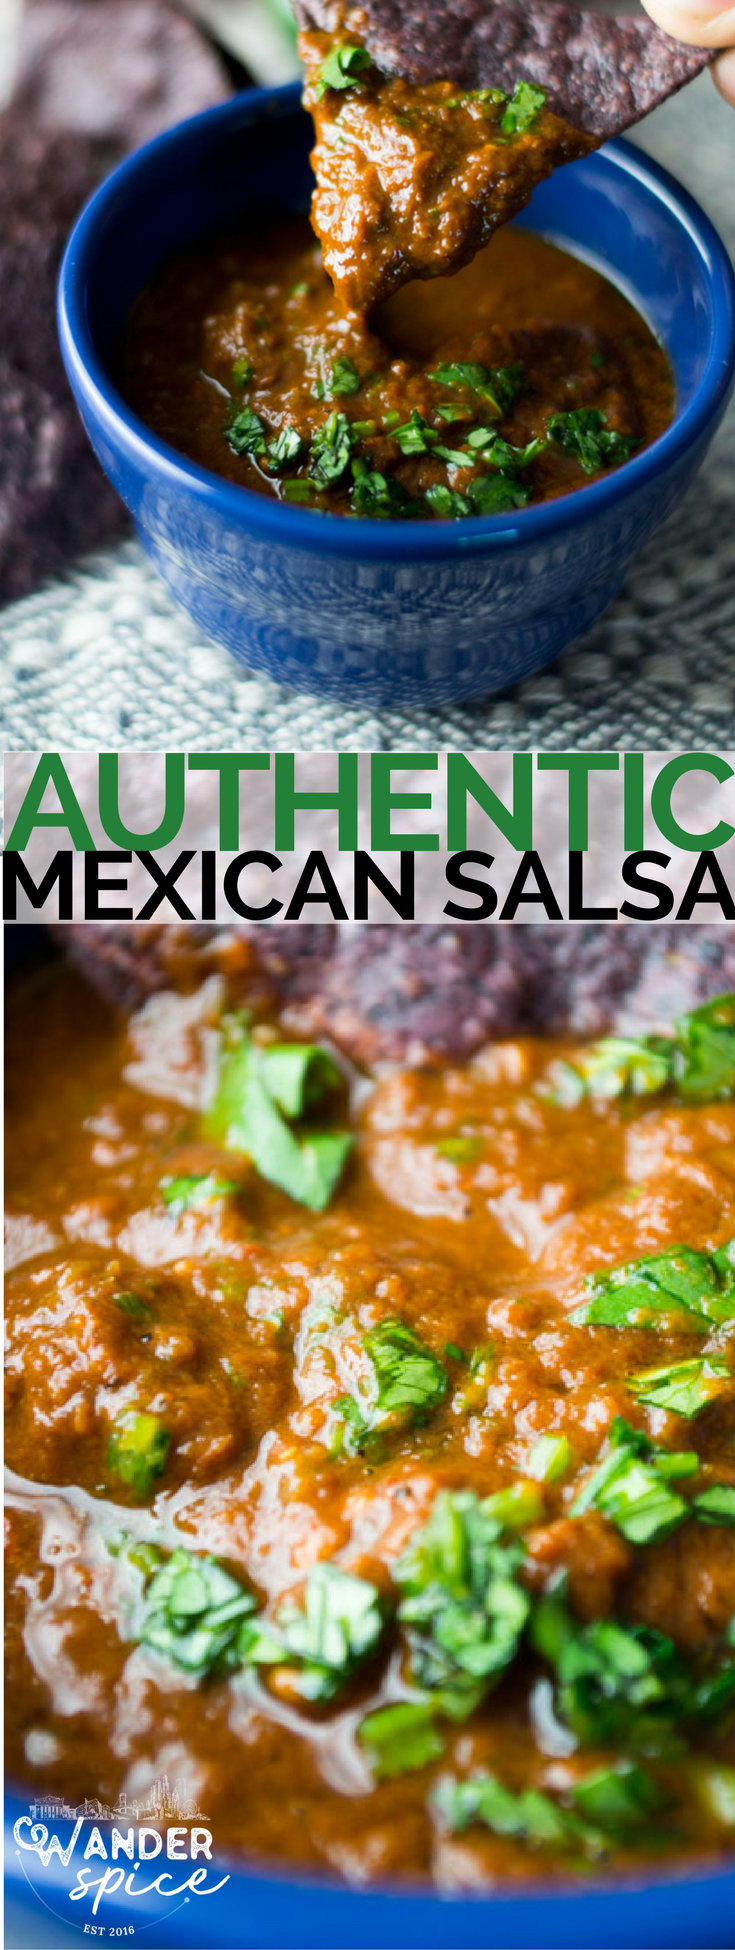 Authentic Mexican Salsa #authenticmexicansalsa Authentic Mexican Salsa. Poblano, Serrano, Chipotle and Jalapeno grilled and charred – like a rebel biker gang circling your taste buds. Mexican | Salsa | Vegan #authenticmexicansalsa Authentic Mexican Salsa #authenticmexicansalsa Authentic Mexican Salsa. Poblano, Serrano, Chipotle and Jalapeno grilled and charred – like a rebel biker gang circling your taste buds. Mexican | Salsa | Vegan #authenticmexicansalsa